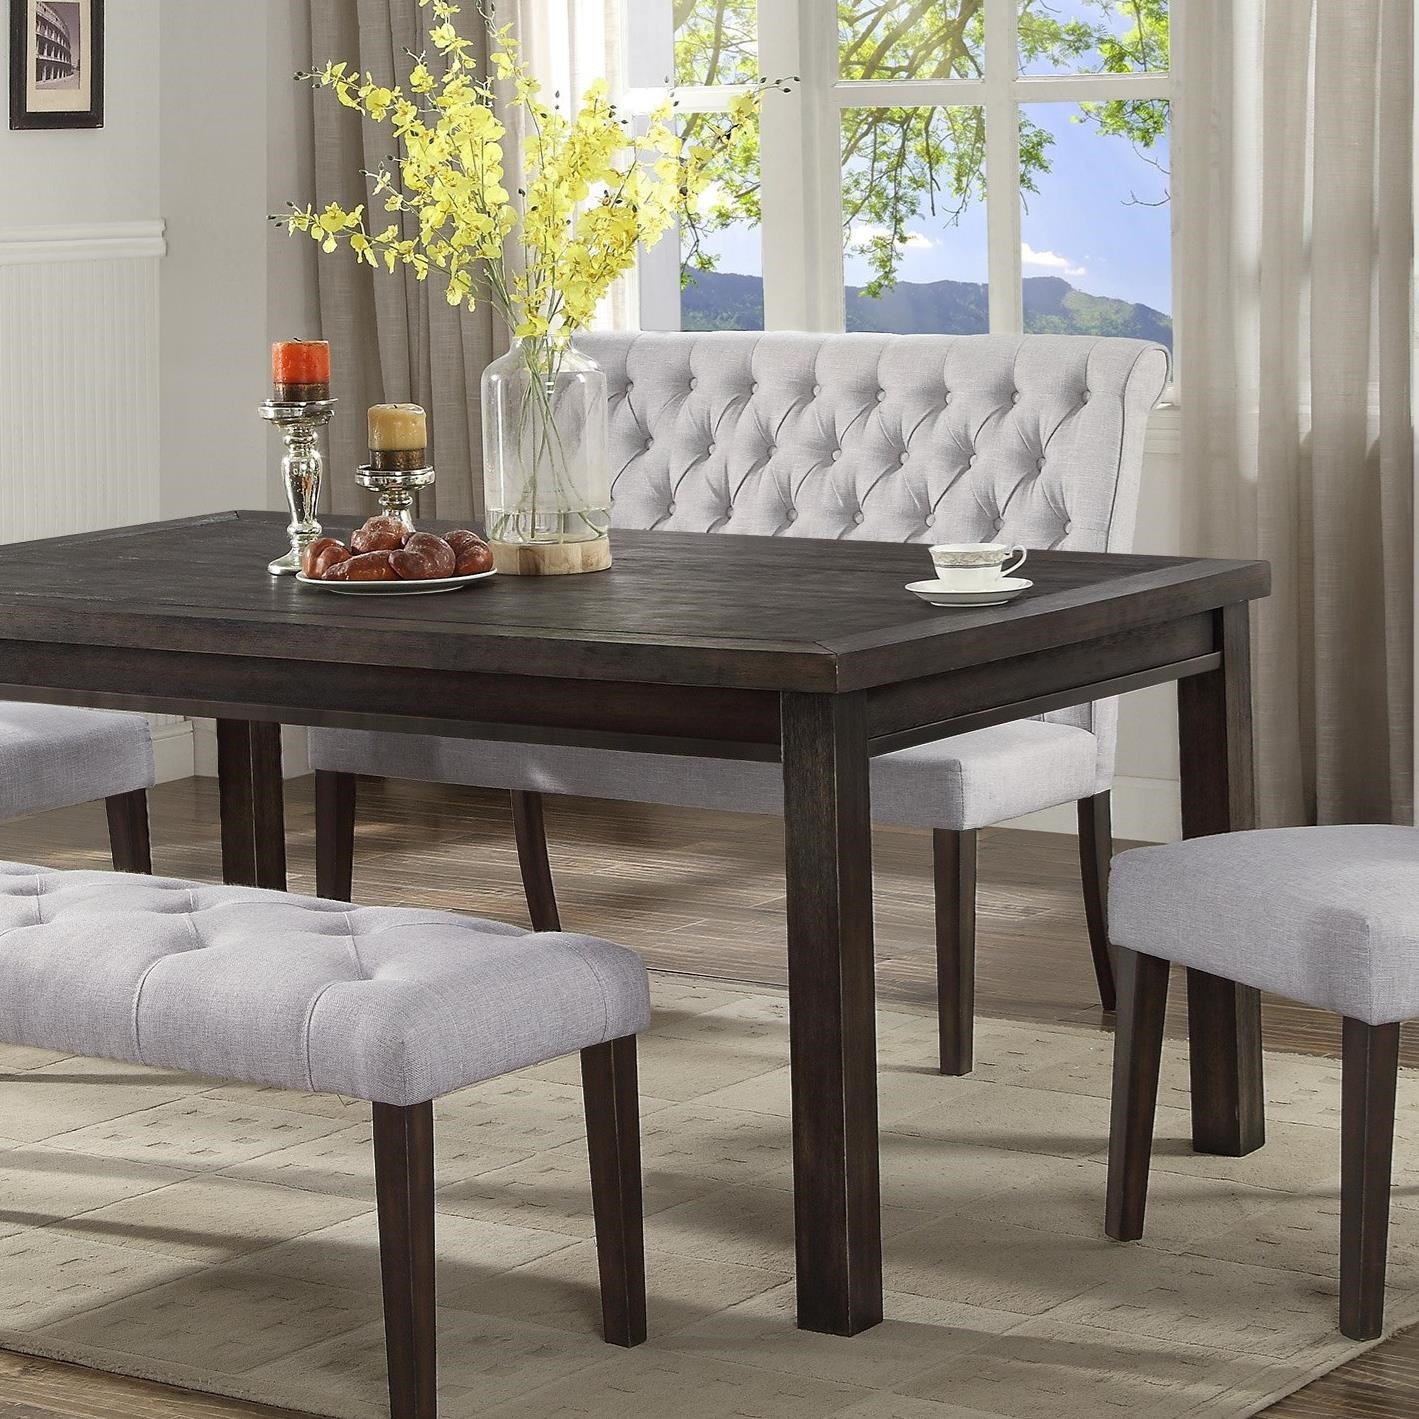 Dining Room Tables With Benches: Crown Mark Palmer Dining 2022S-2 Upholstered High Back